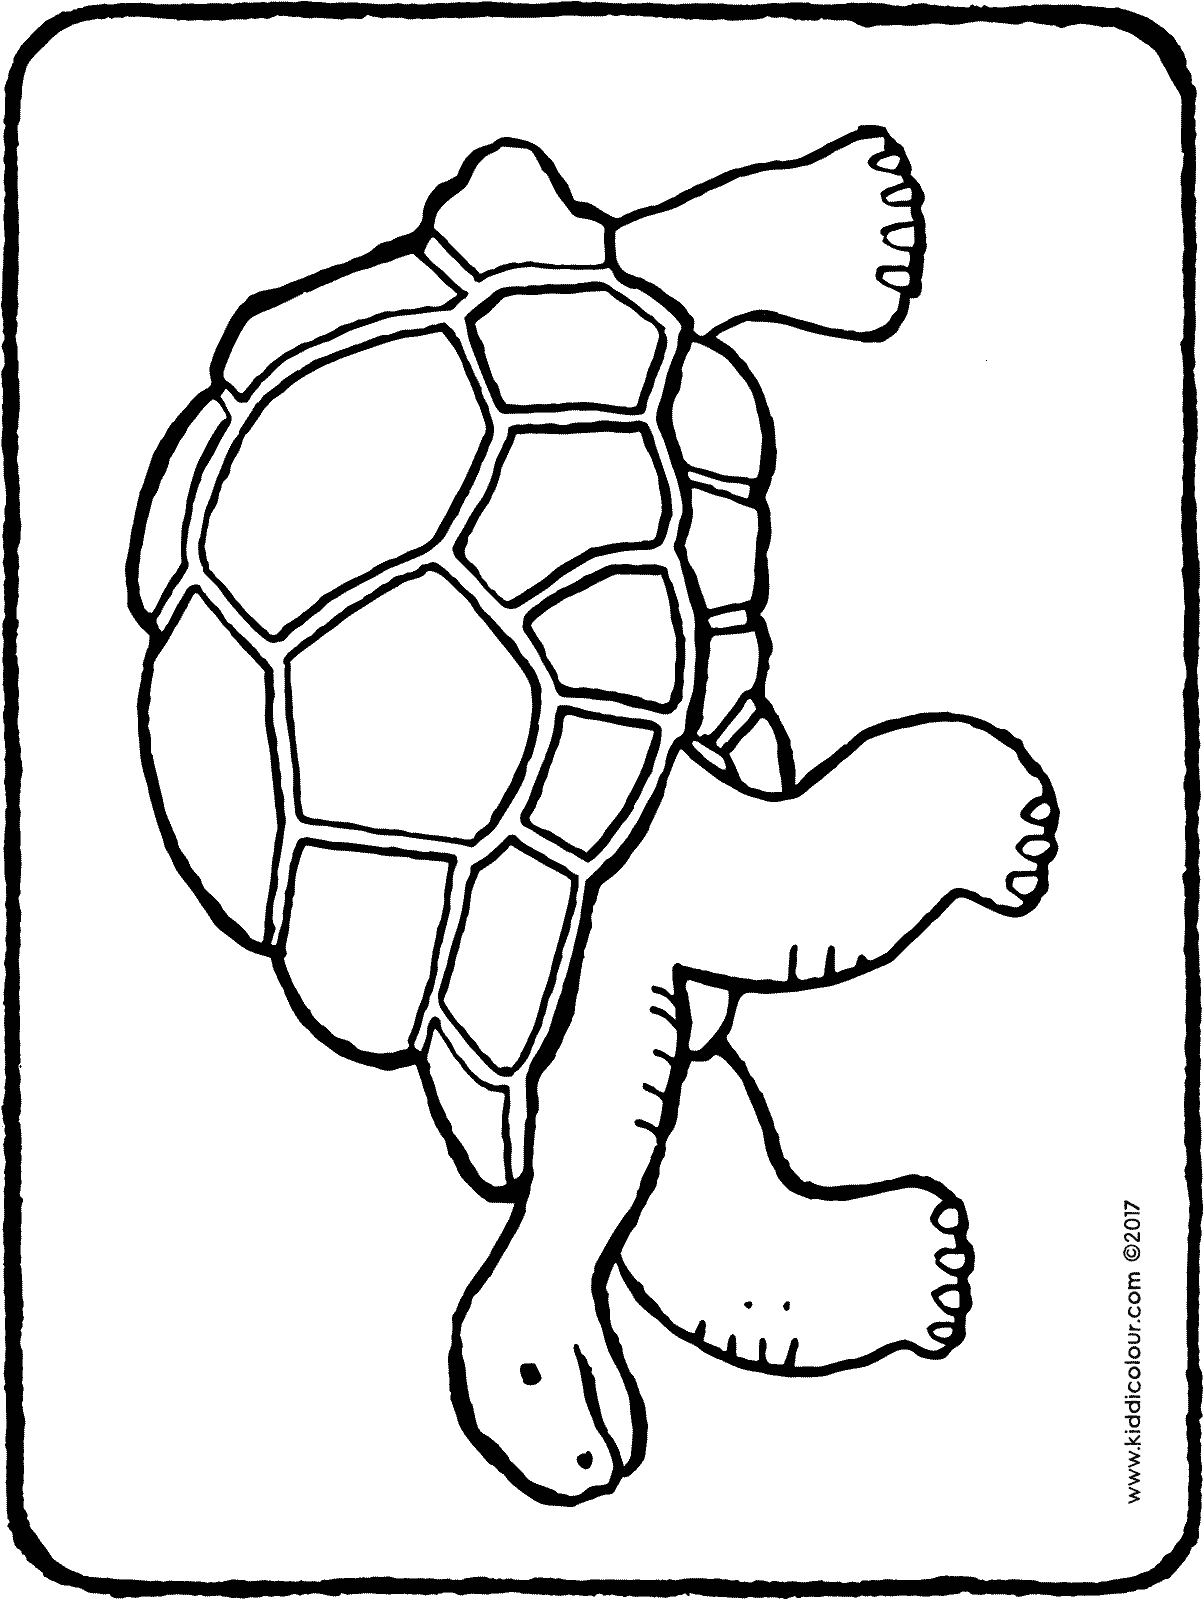 tortoise coloring page turtles to print turtles kids coloring pages tortoise coloring page